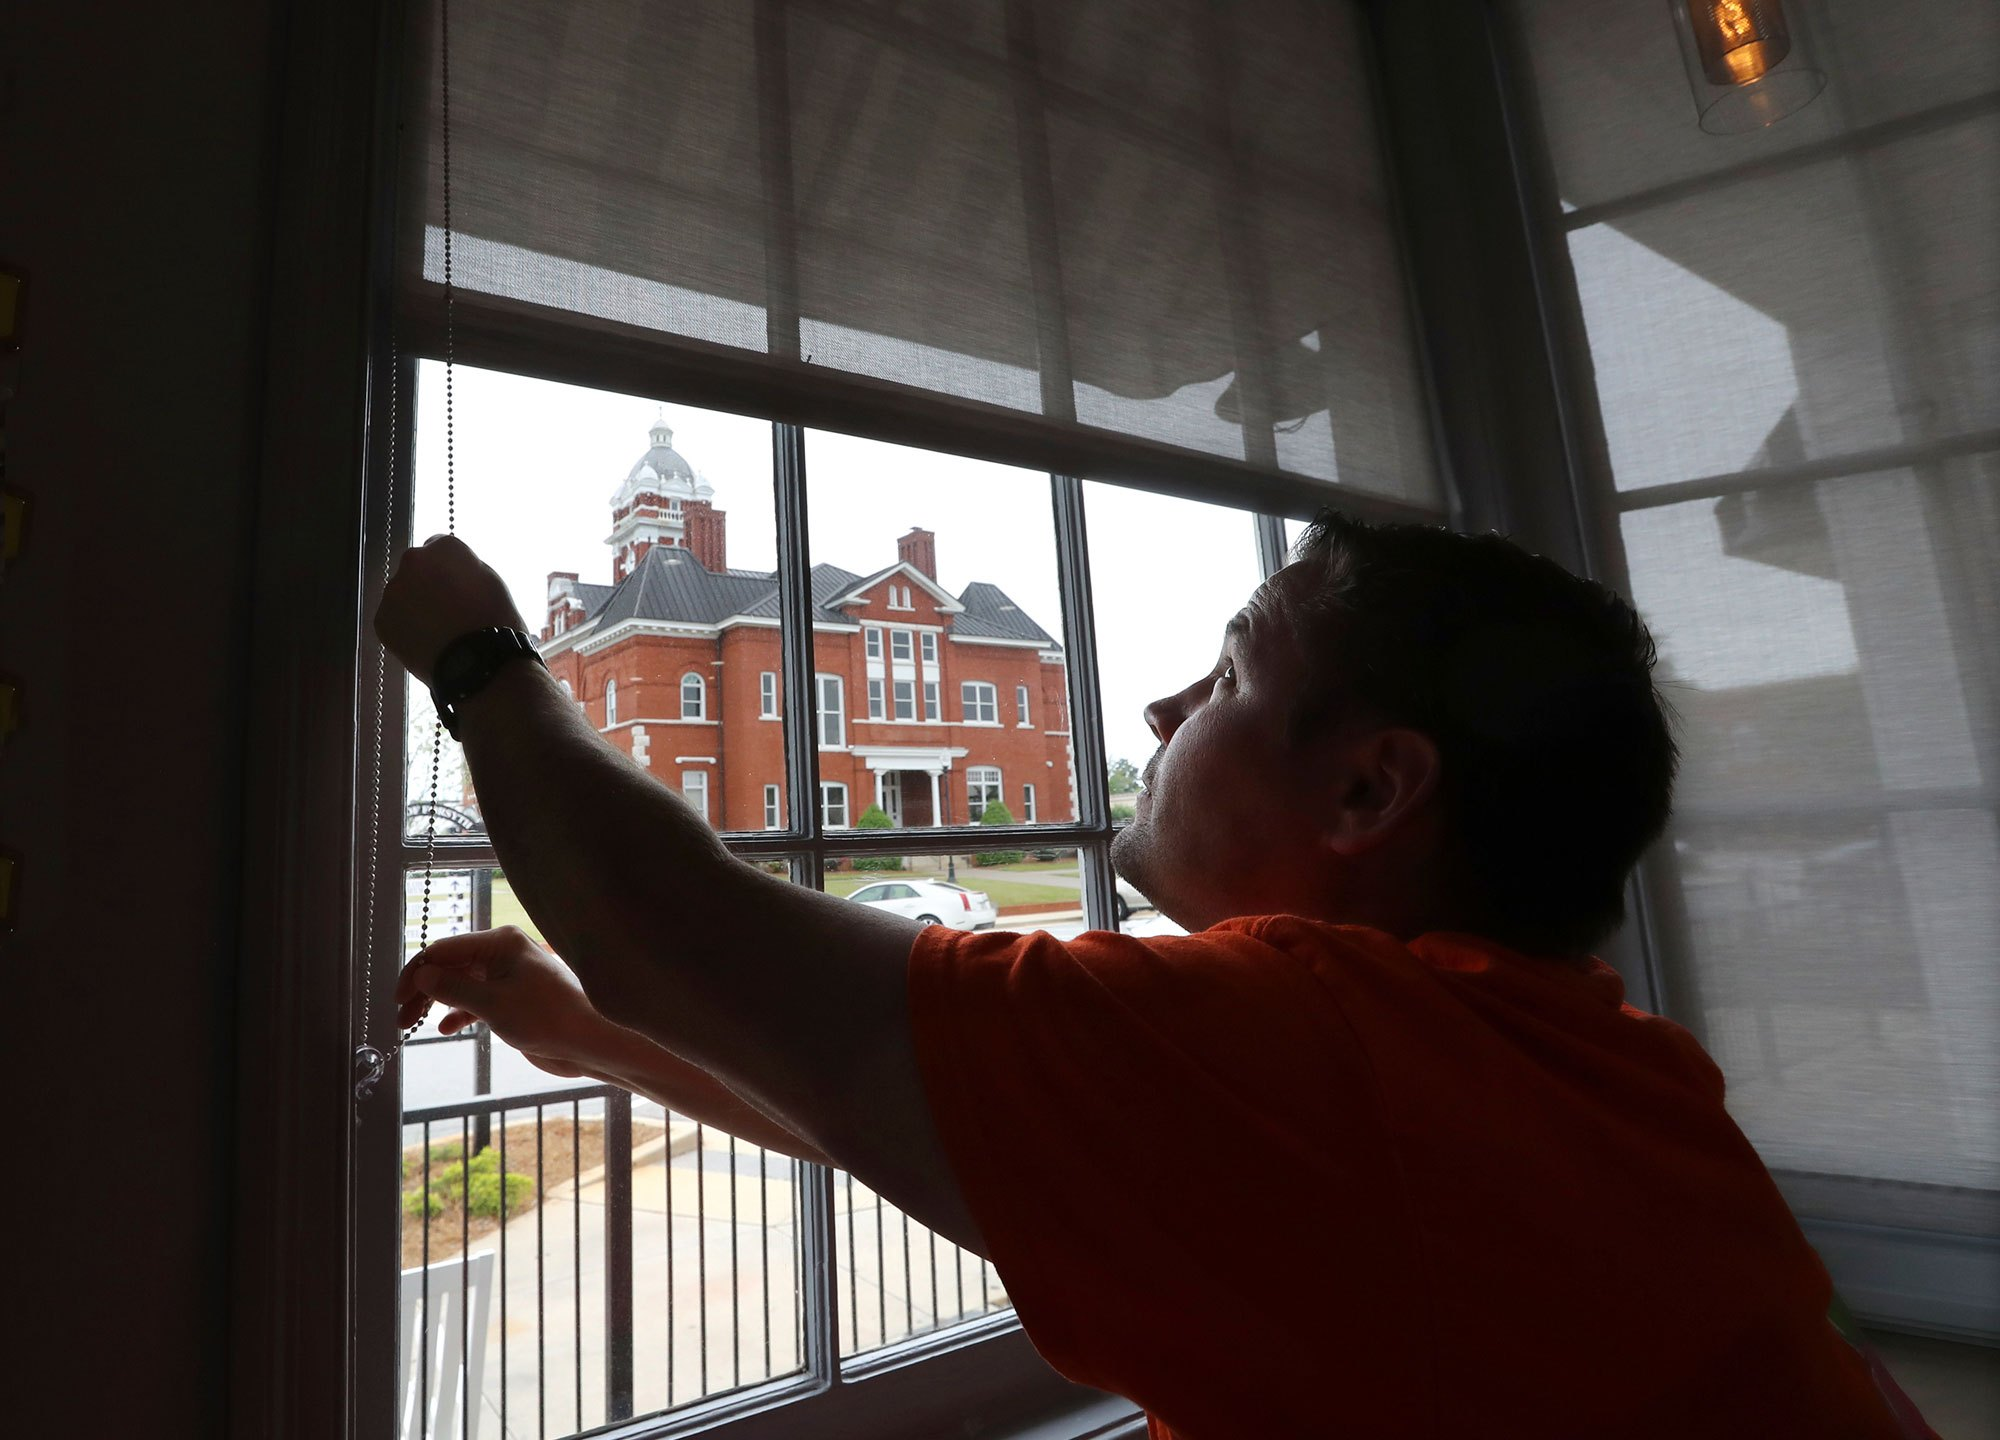 Brian Lambert, owner of a coffee and sweets shop in Forsyth, Georgia, opens the windows of his business as he gets ready to reopen next week. (Curtis Compton/AP via CNN Wire)